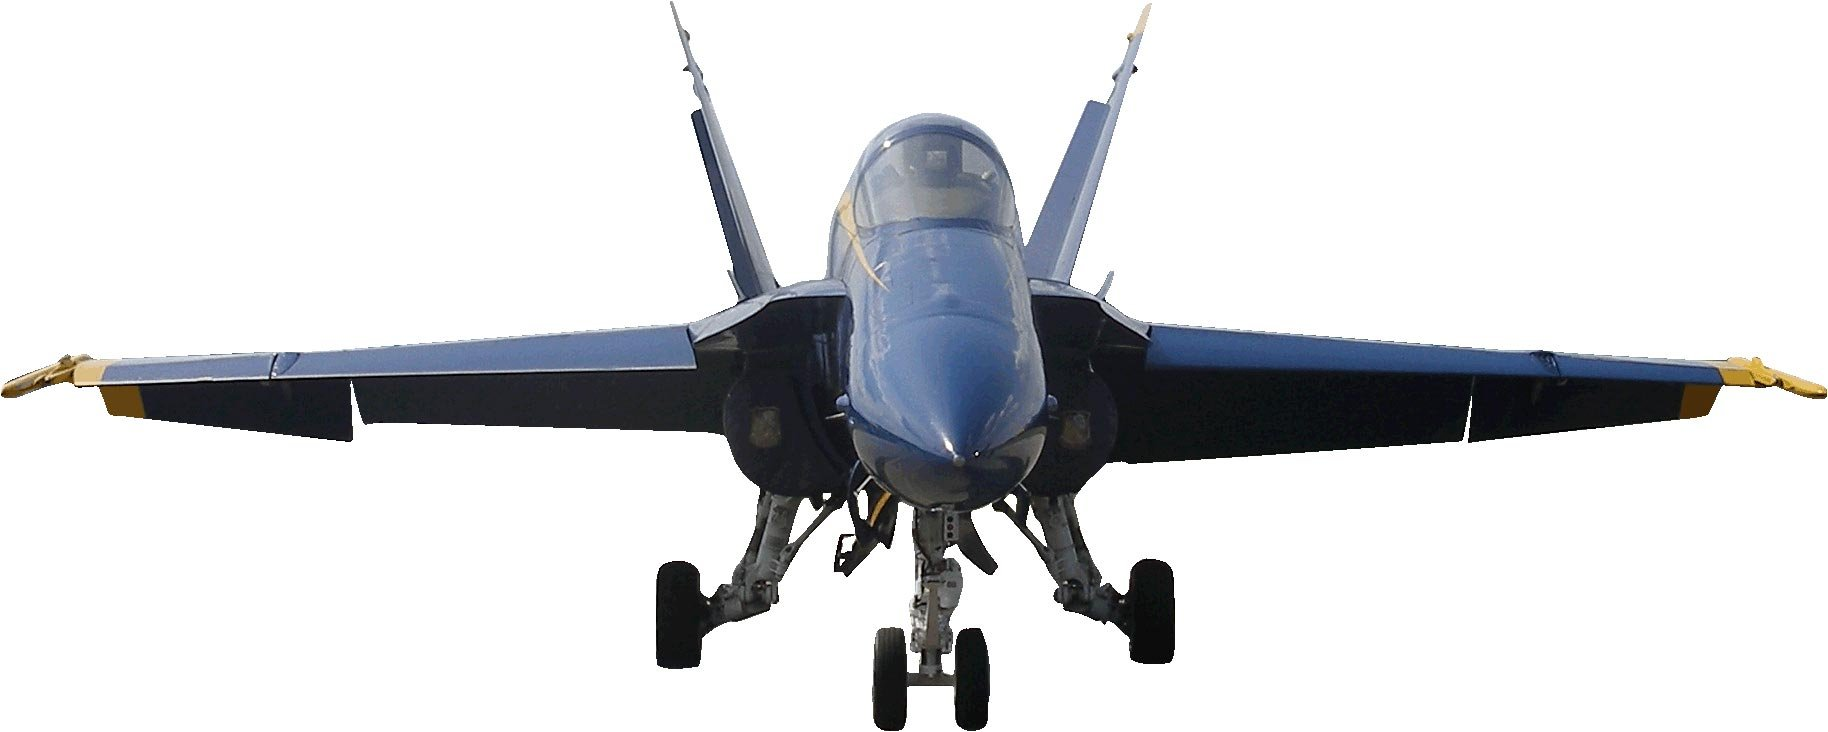 US Navy ''Blue Angel'' F-18 Hornet Cutout (Nose View) 29''x72''